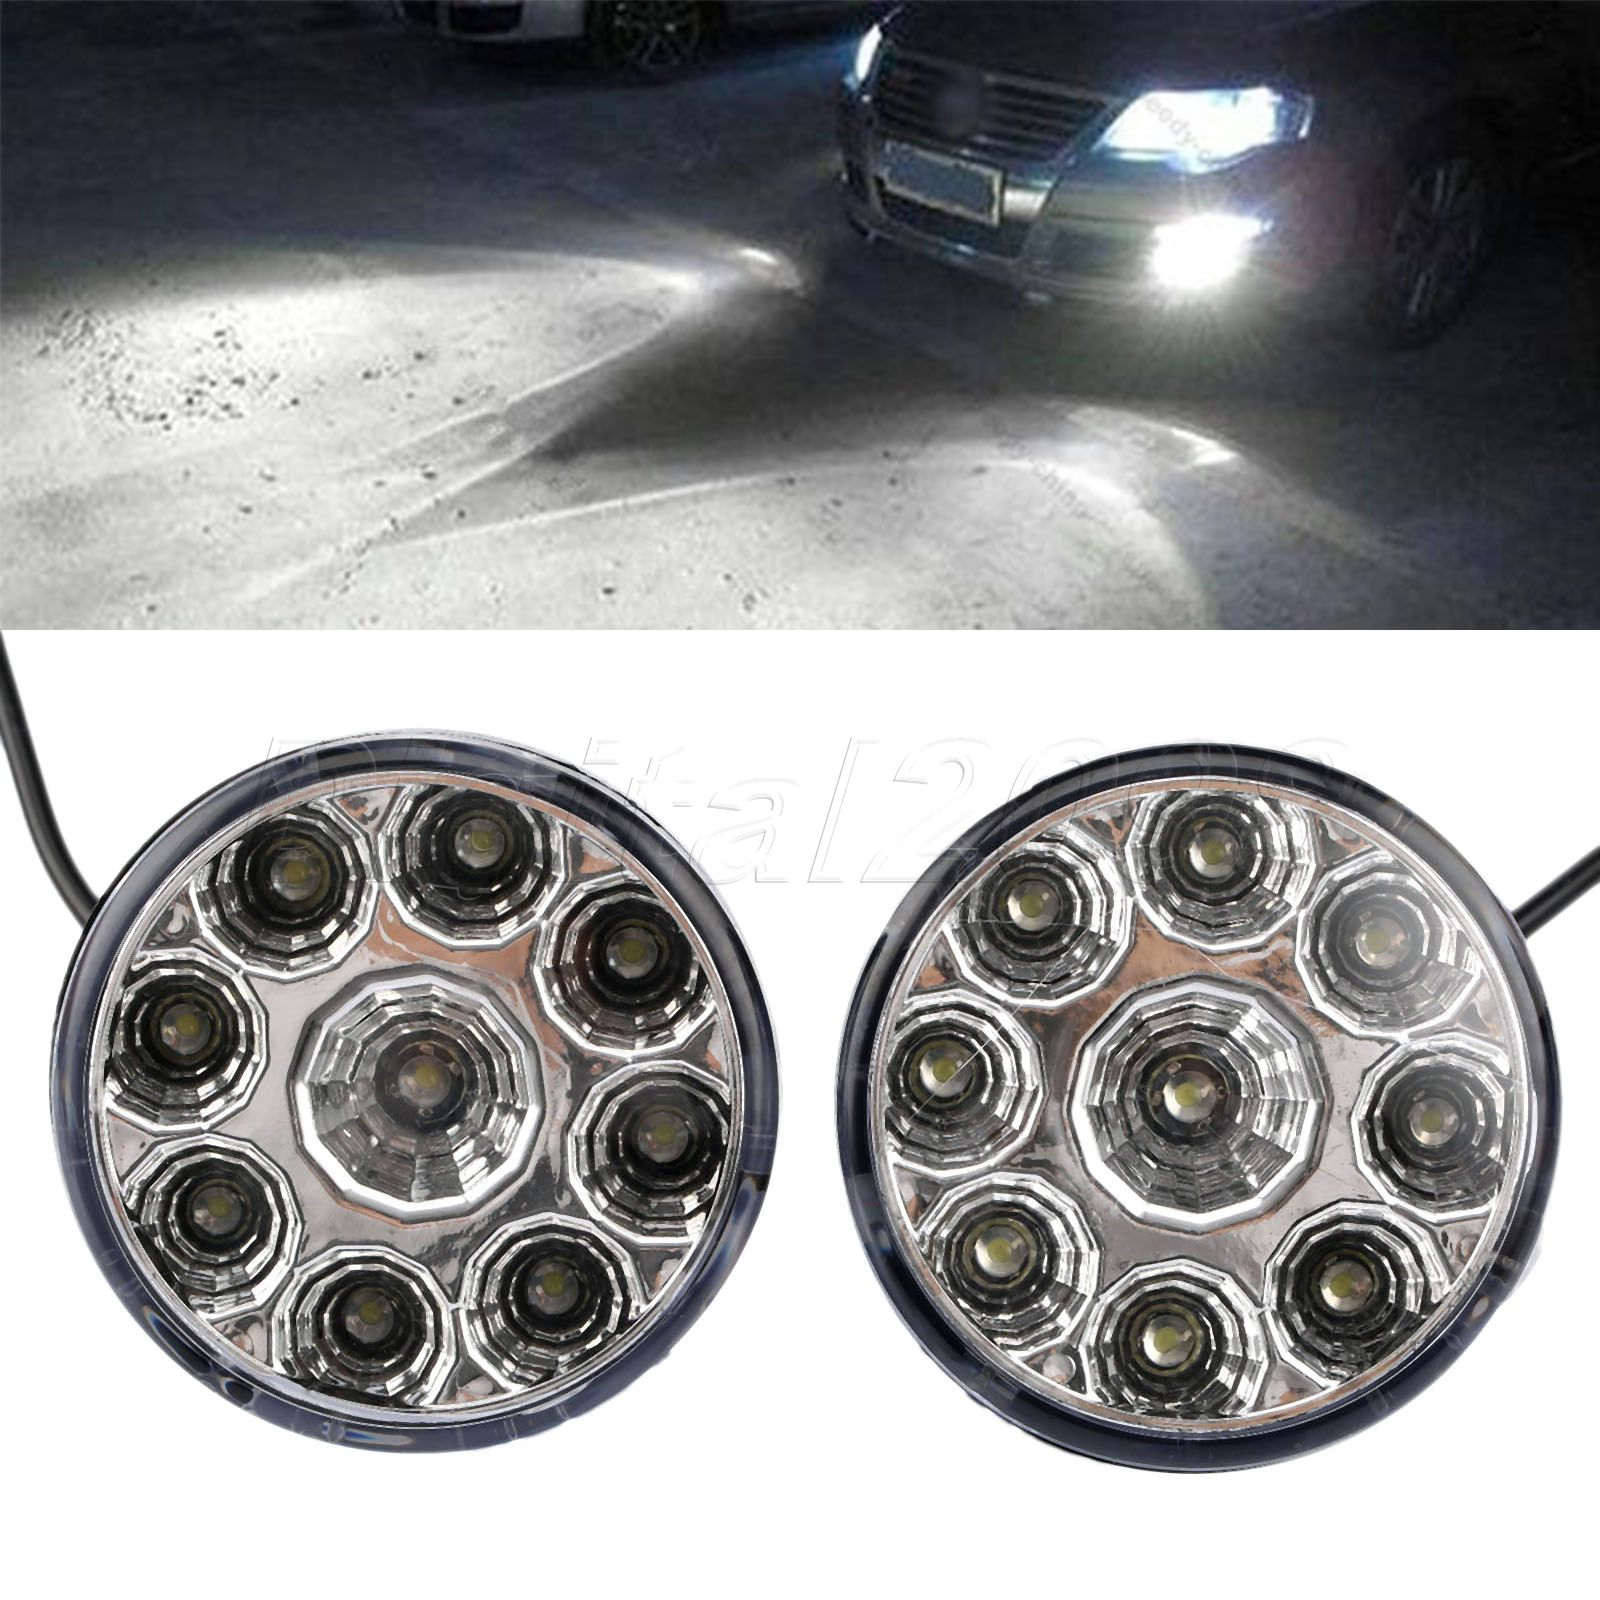 Yetaha 2pcs DRL Round Daytime Running Light Car Fog Lamp Day Driving Lamp 12v 9 LED Auto Headlight White Fog Light High Quality 12v led light auto headlamp h1 h3 h7 9005 9004 9007 h4 h15 car led headlight bulb 30w high single dual beam white light